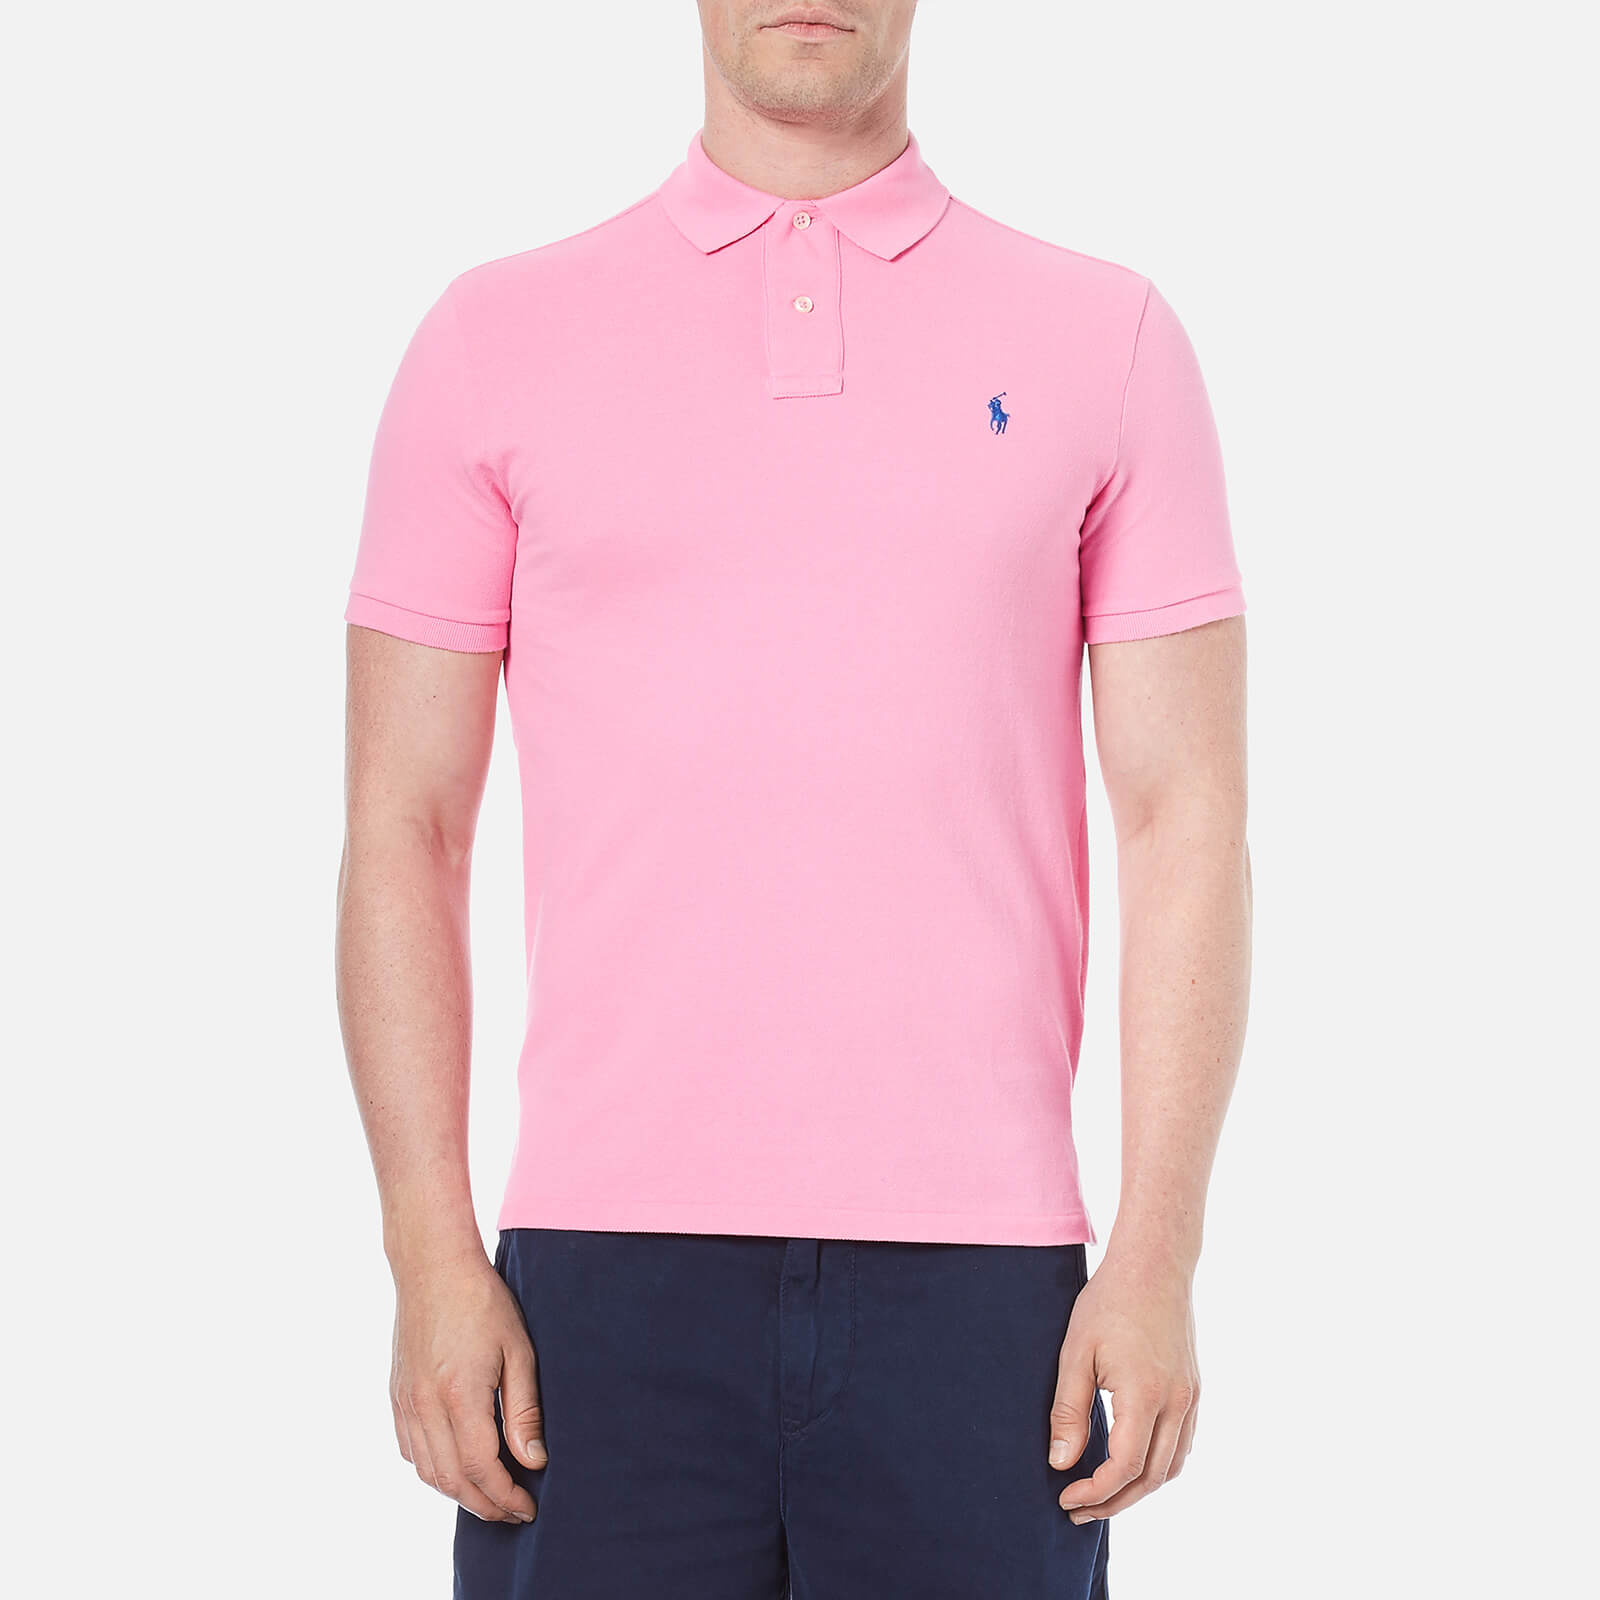 41502458 Polo Ralph Lauren Men's Custom Fit Polo Shirt - Heritage Pink - Free UK  Delivery over £50